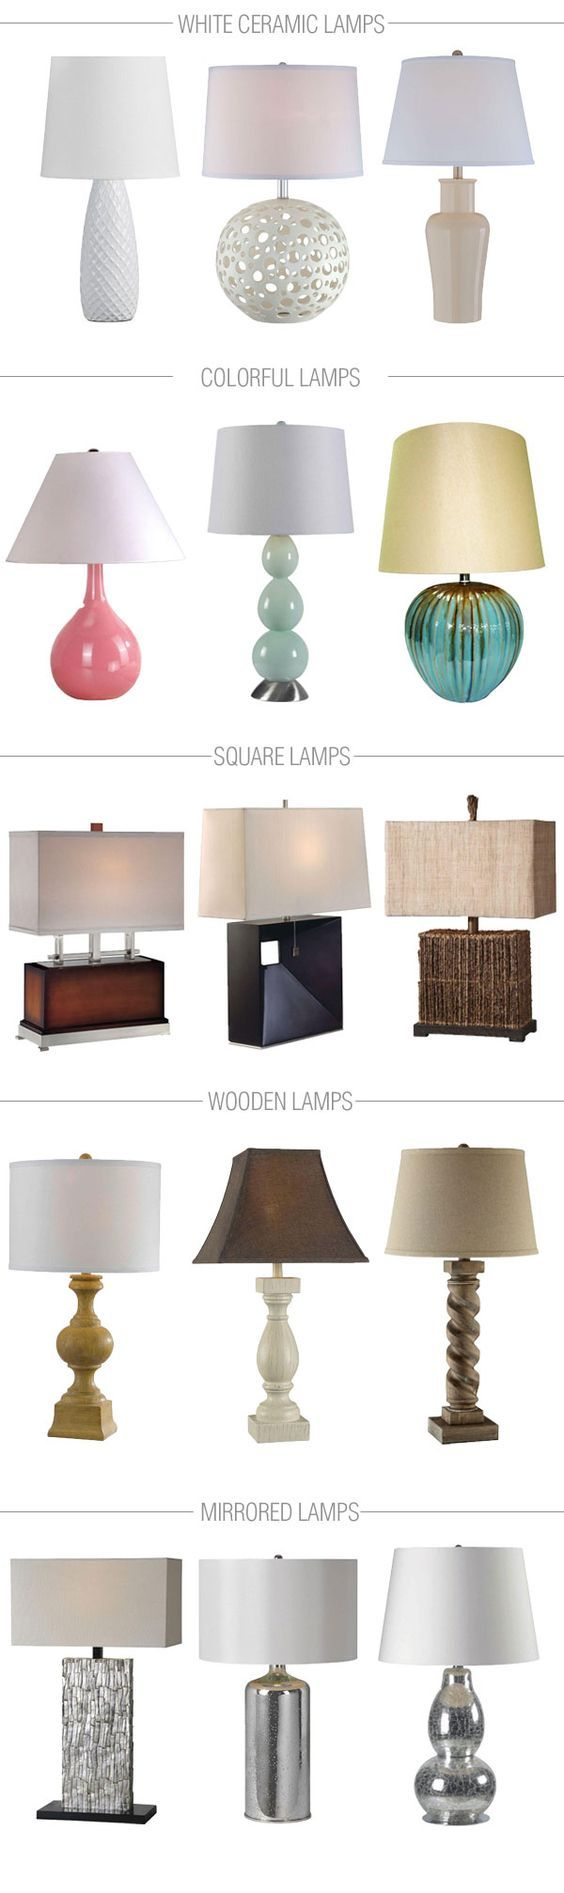 Table lamps are so versatile and bring both function and drama to a room. Here are 15 of our favorite options. Which one do you like best?: